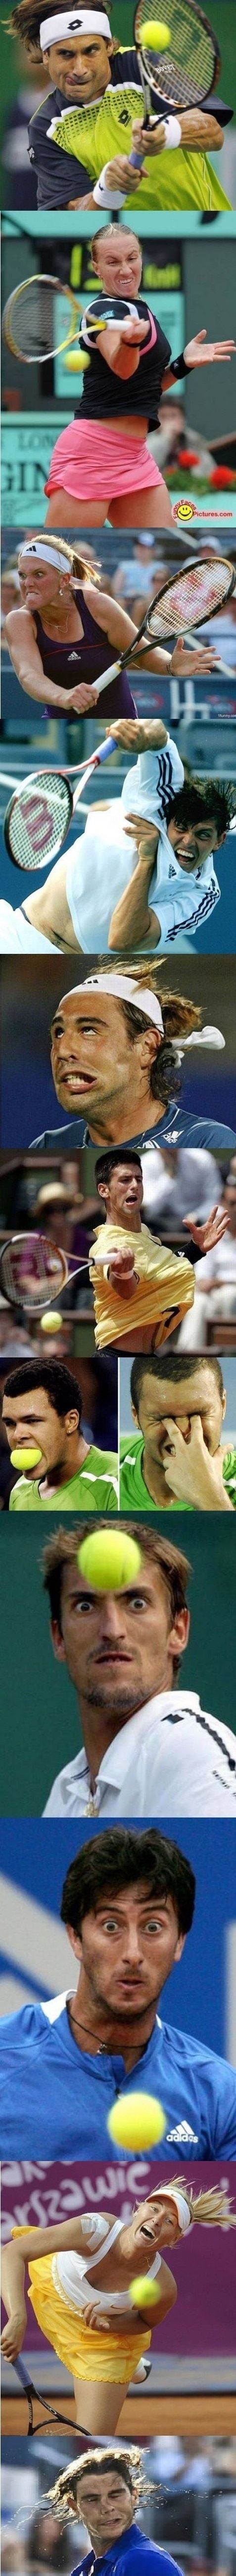 Awkward tennis snapshots. My new go-to after a bad day